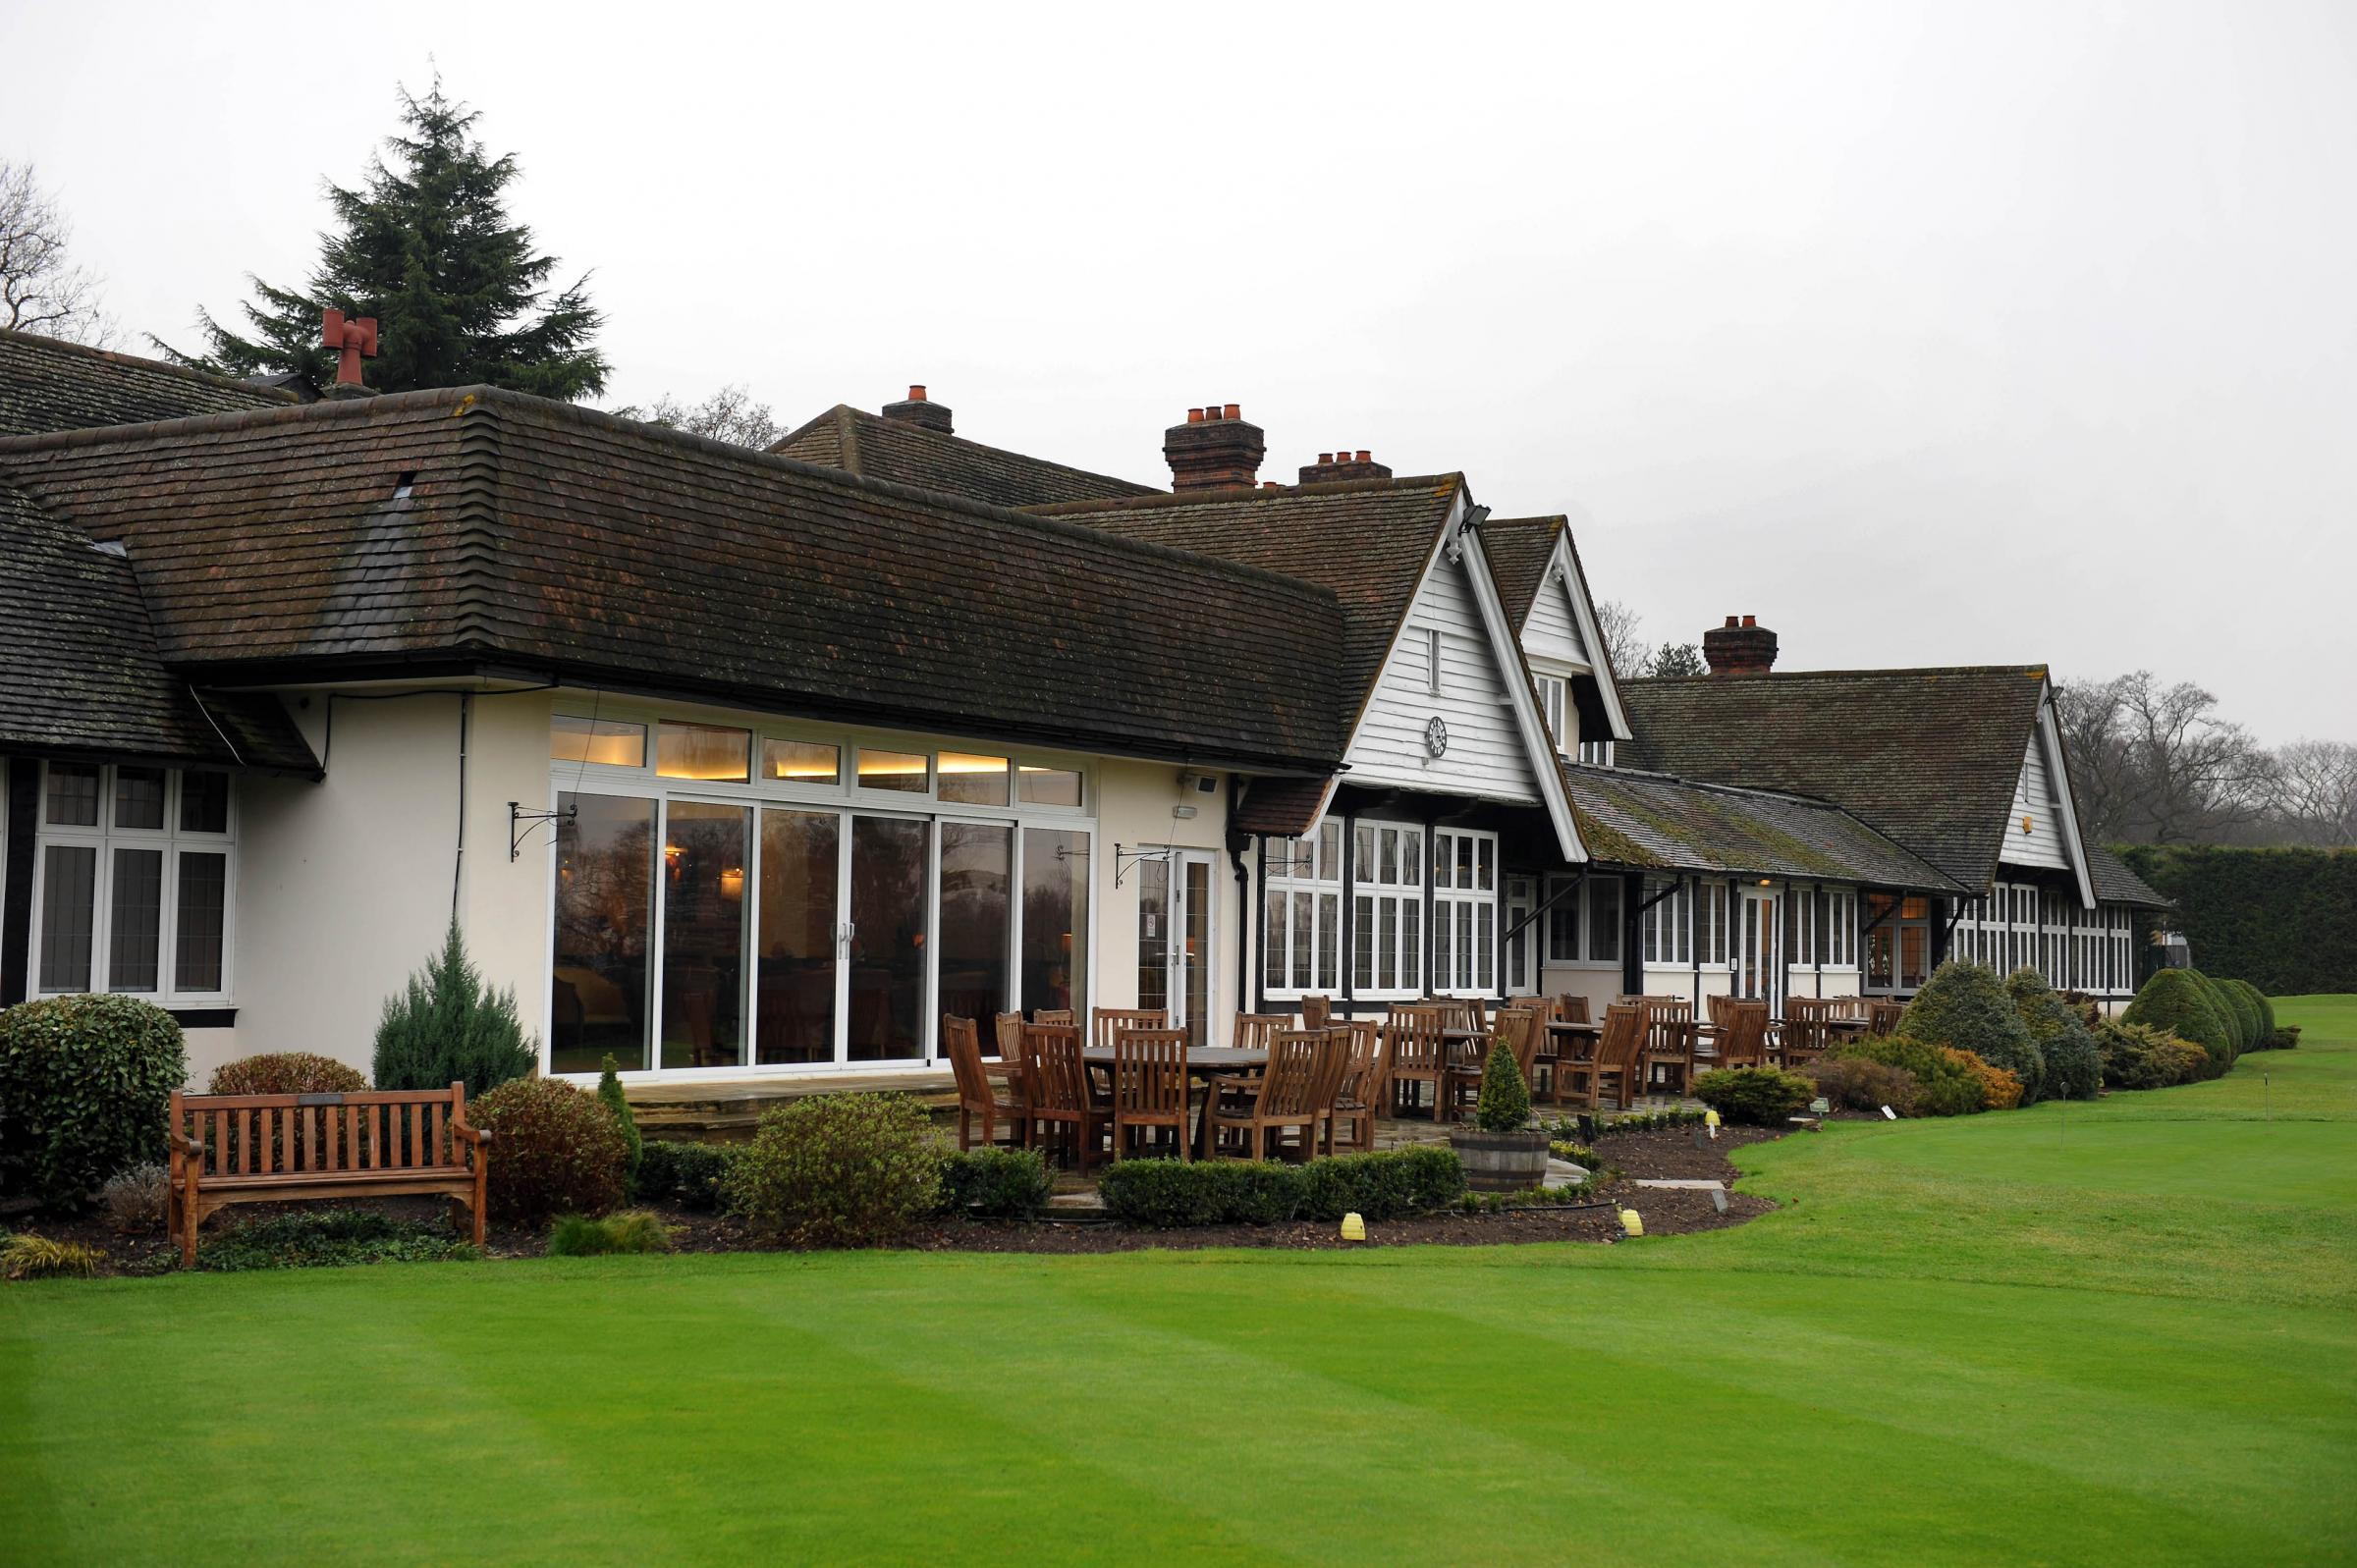 Coombe Hill Golf Club is part of the council's property portfolio